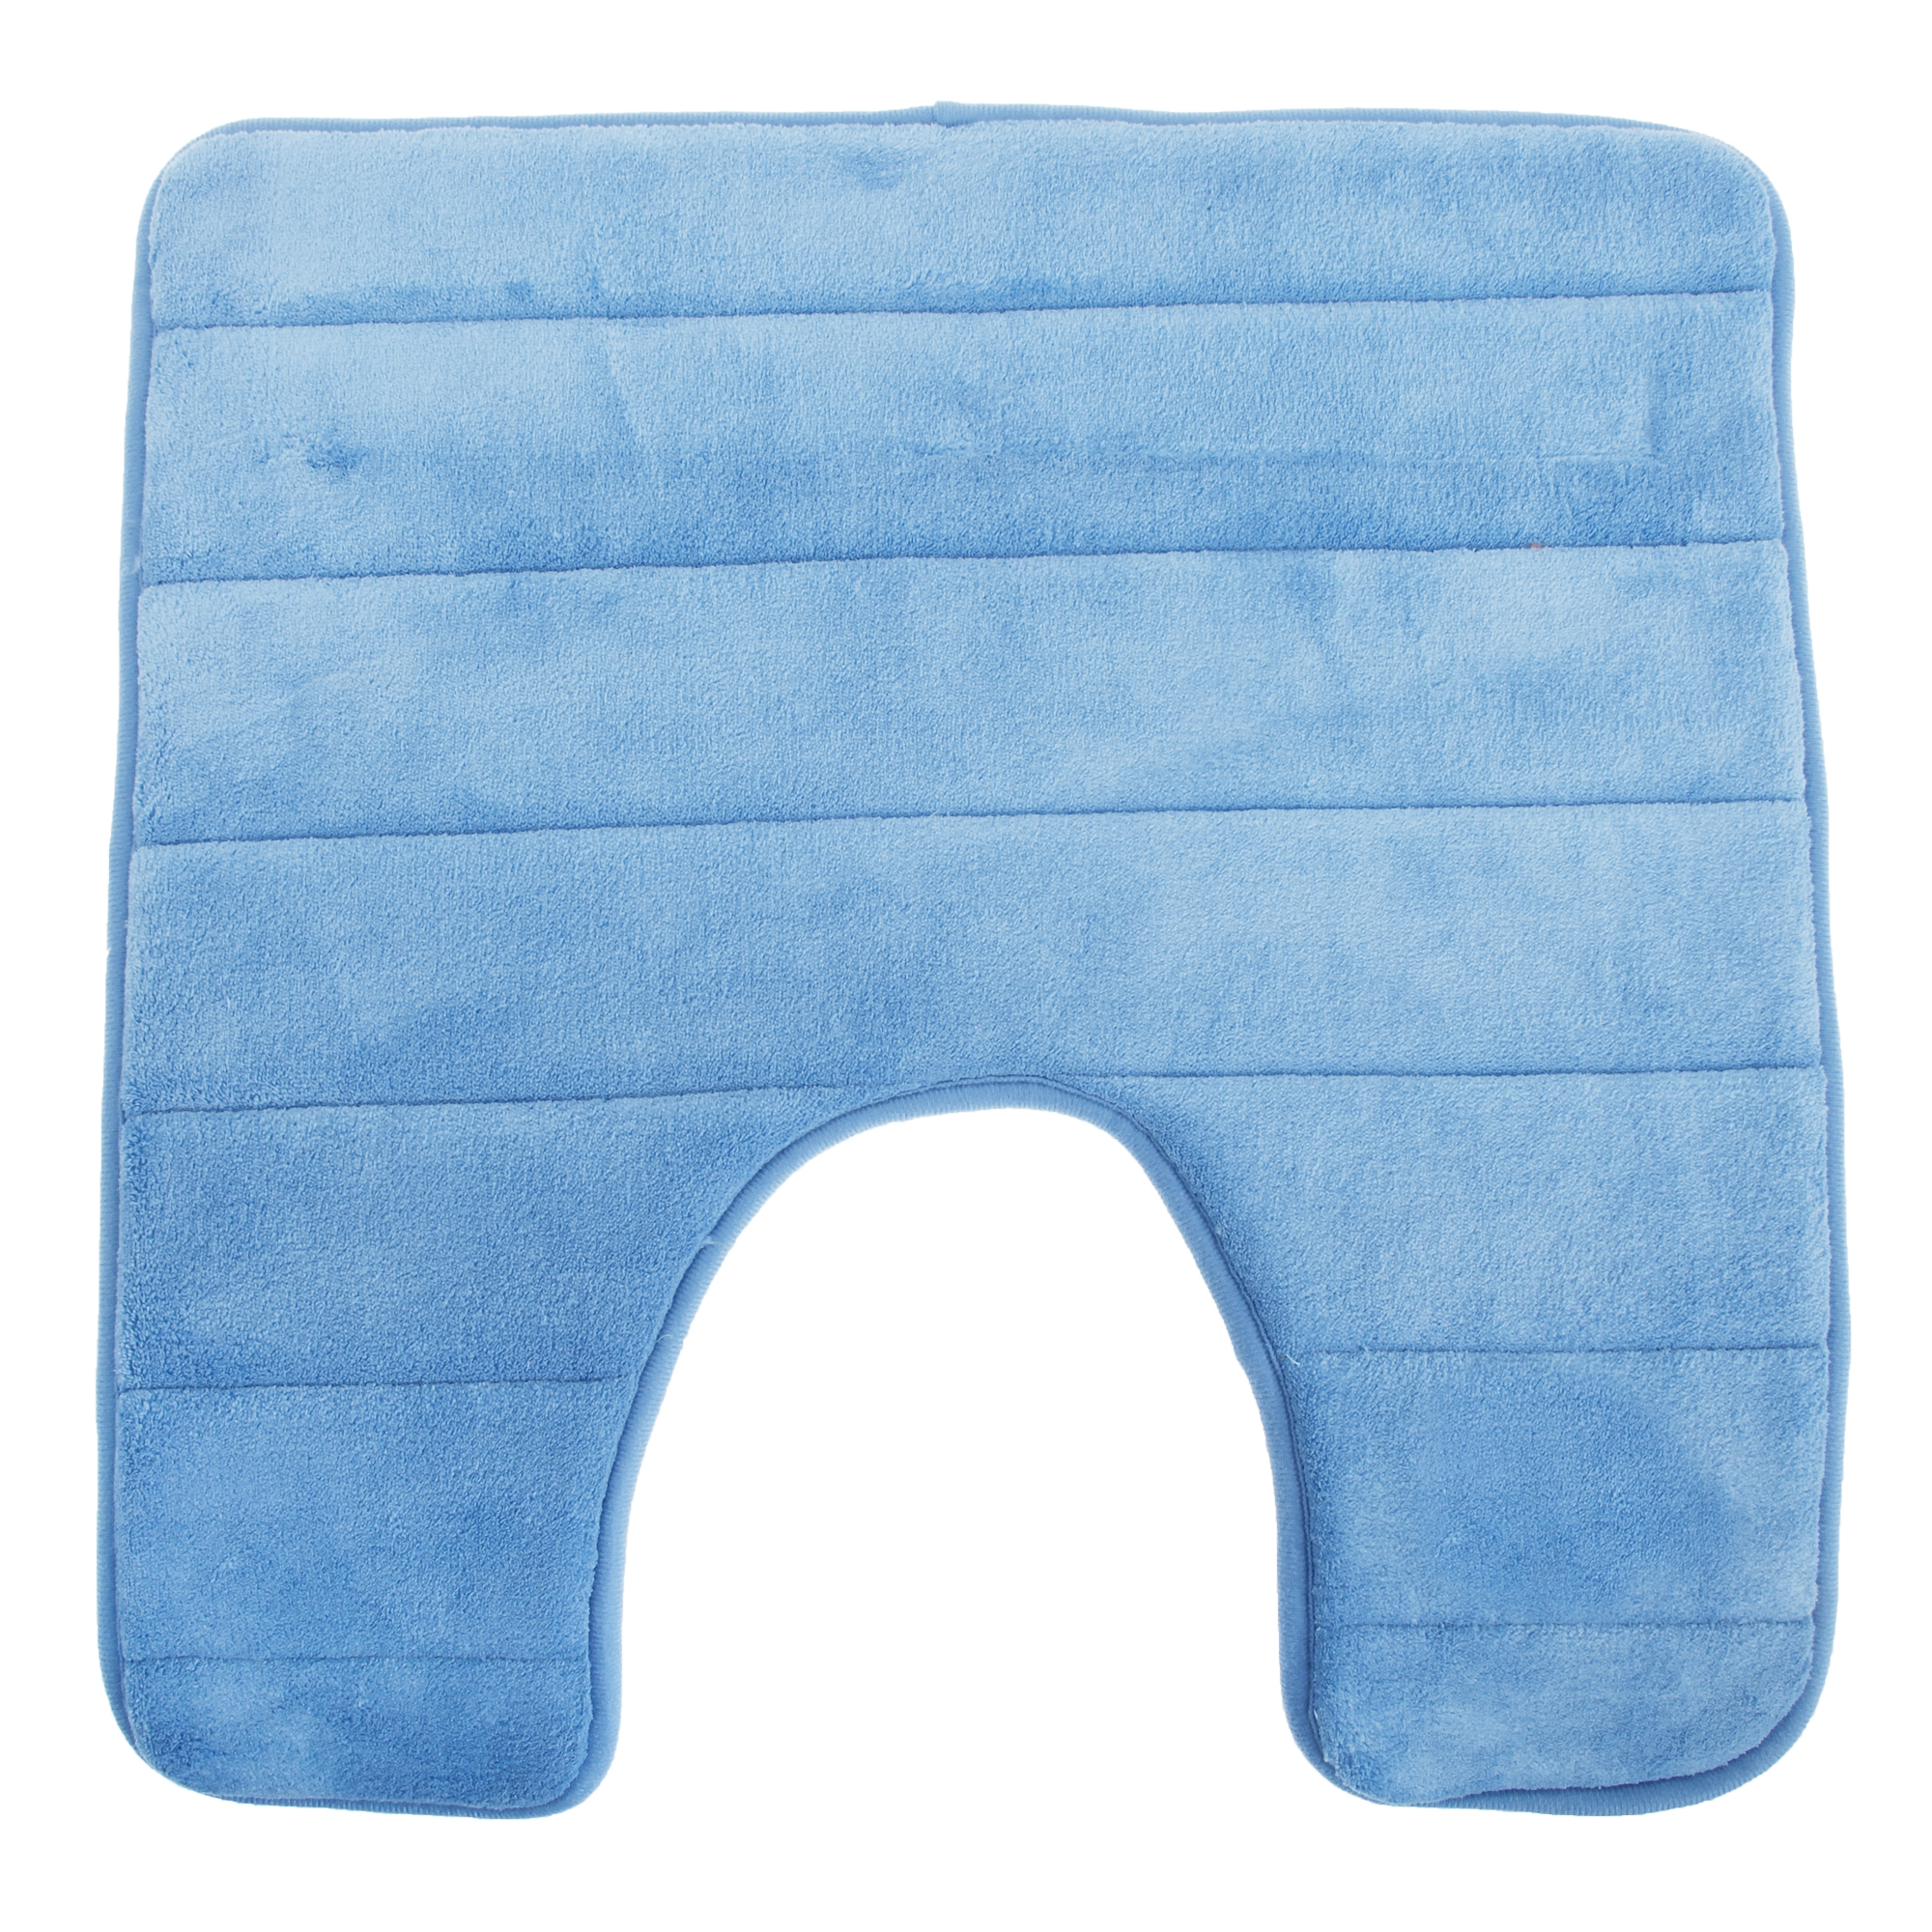 Permalink to Non Slip Bath And Toilet Mats